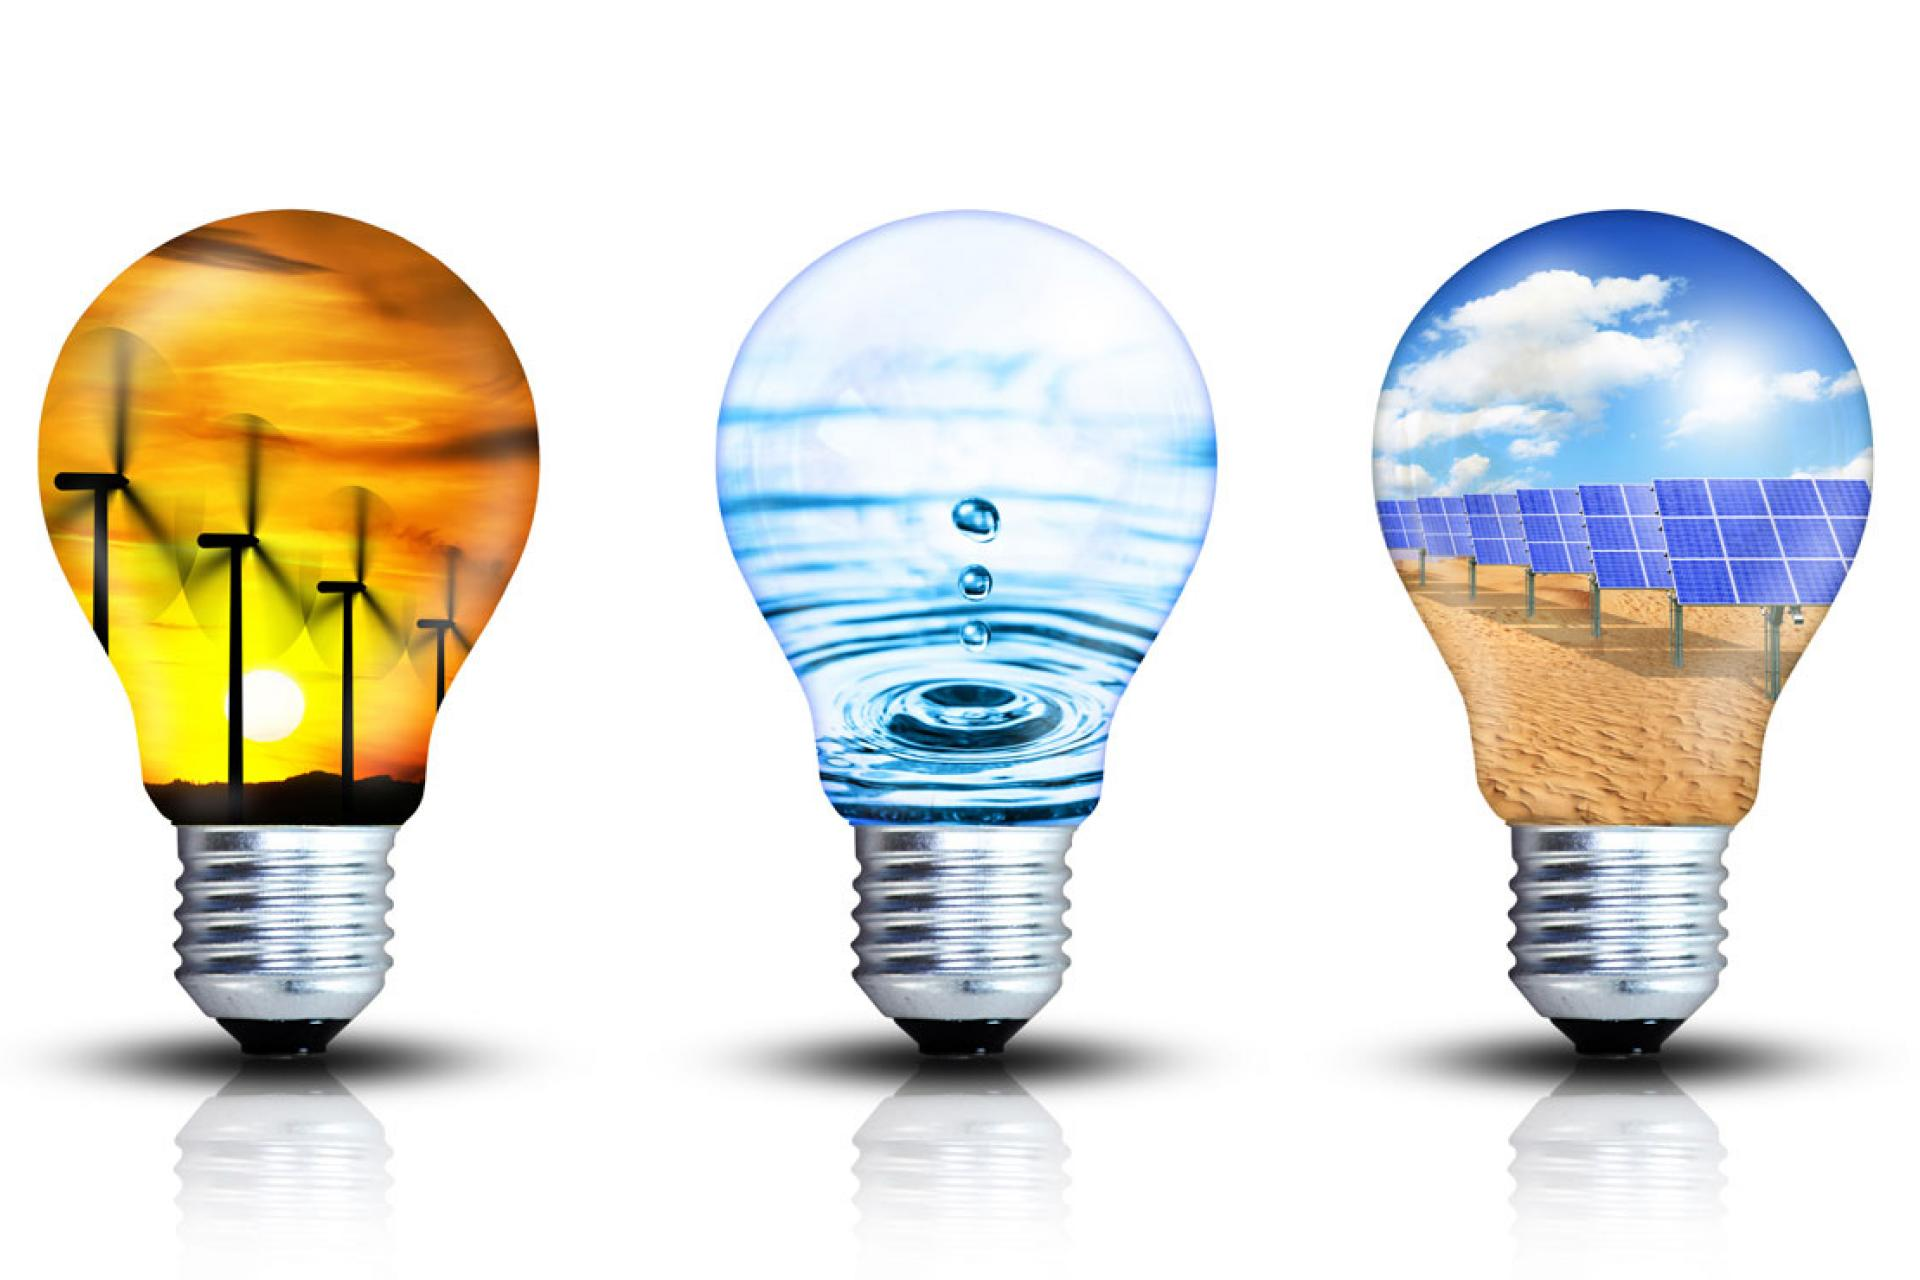 light-bulbs symbolizing clean energy